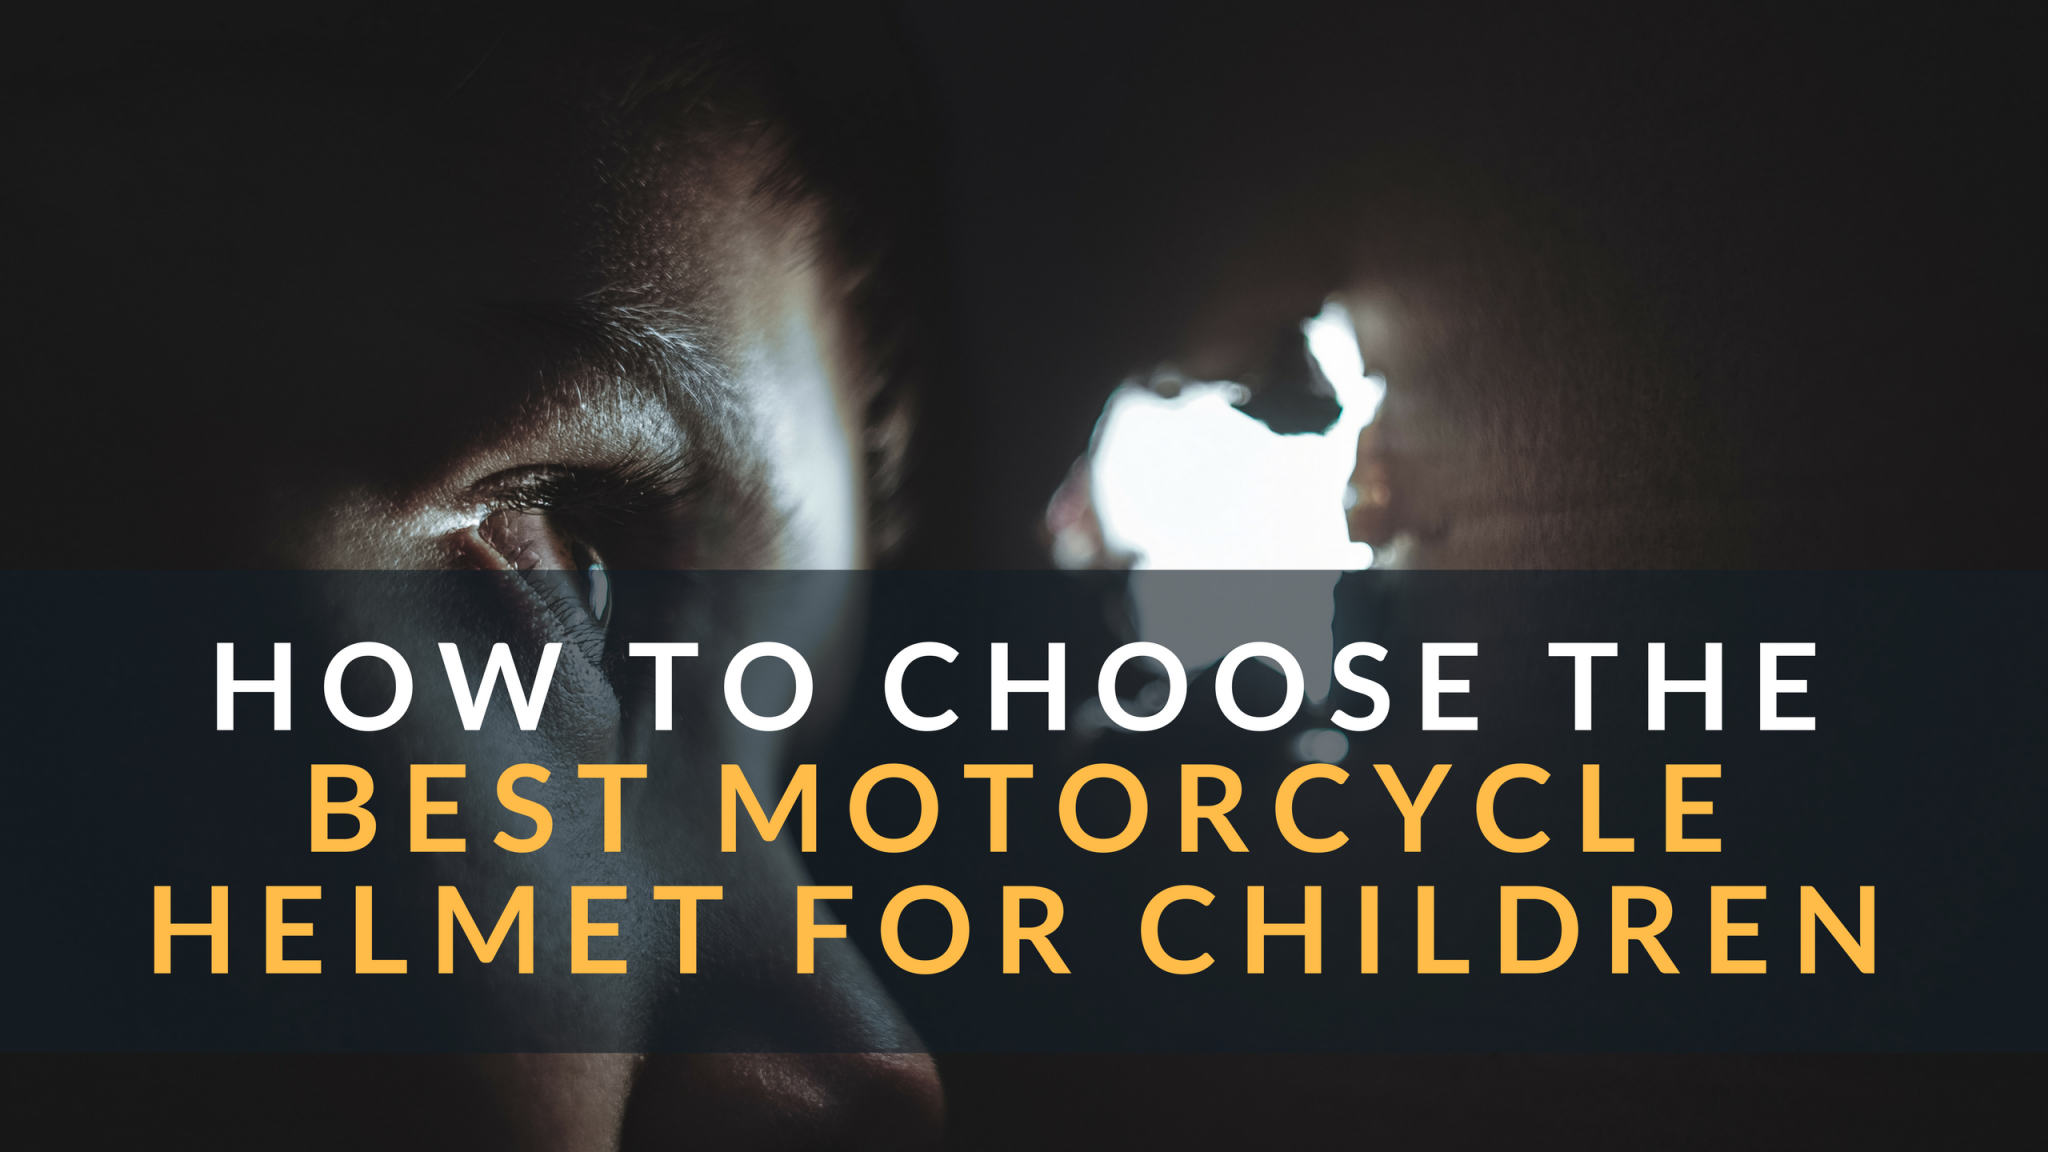 How to Choose the Best Motorcycle Helmet for Children